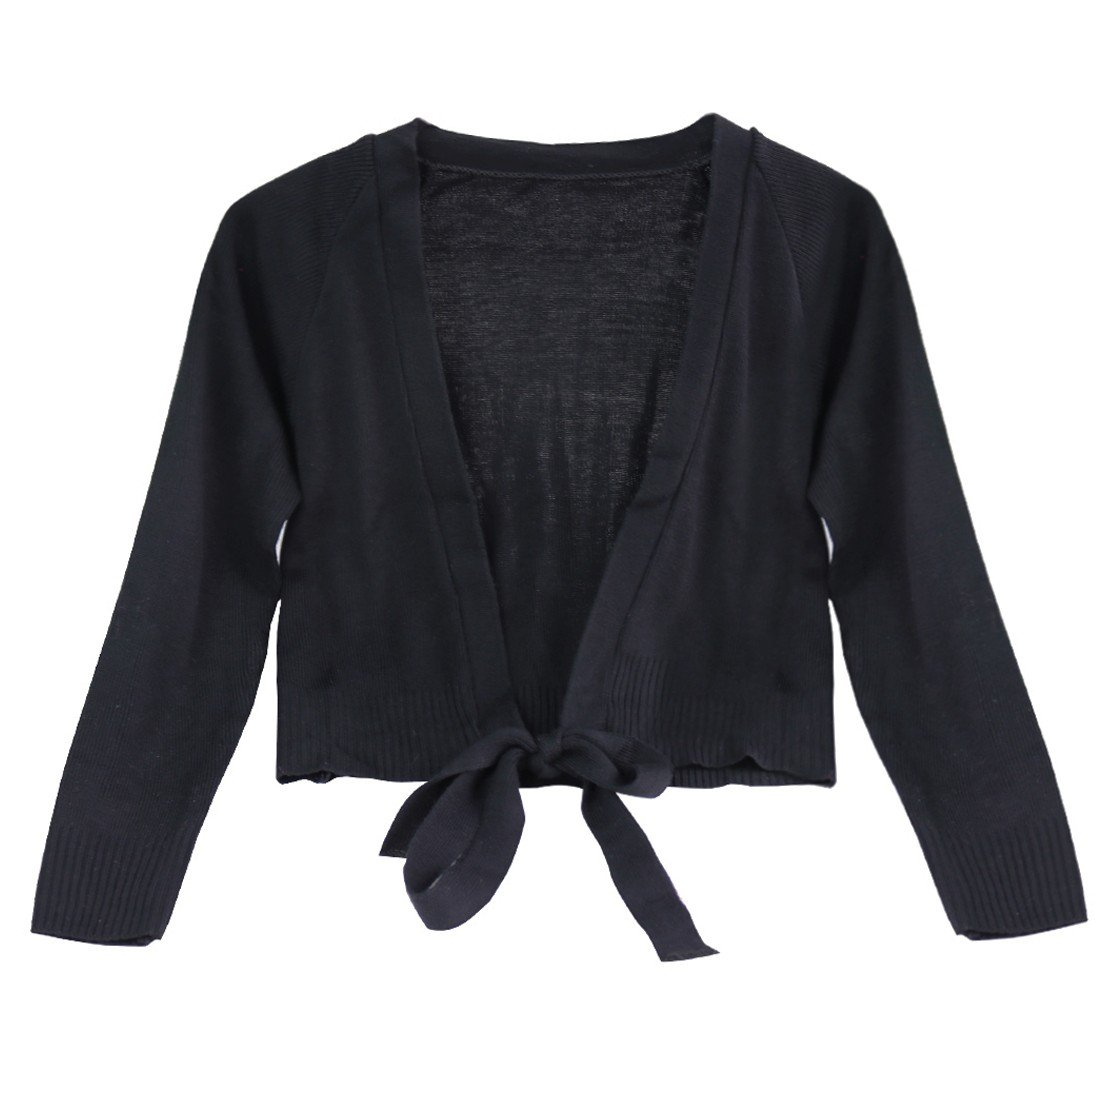 iEFiEL Kids Girls Long Sleeves Front Tie Knot Shrug Stretchy Cardigan Top Black 3-4